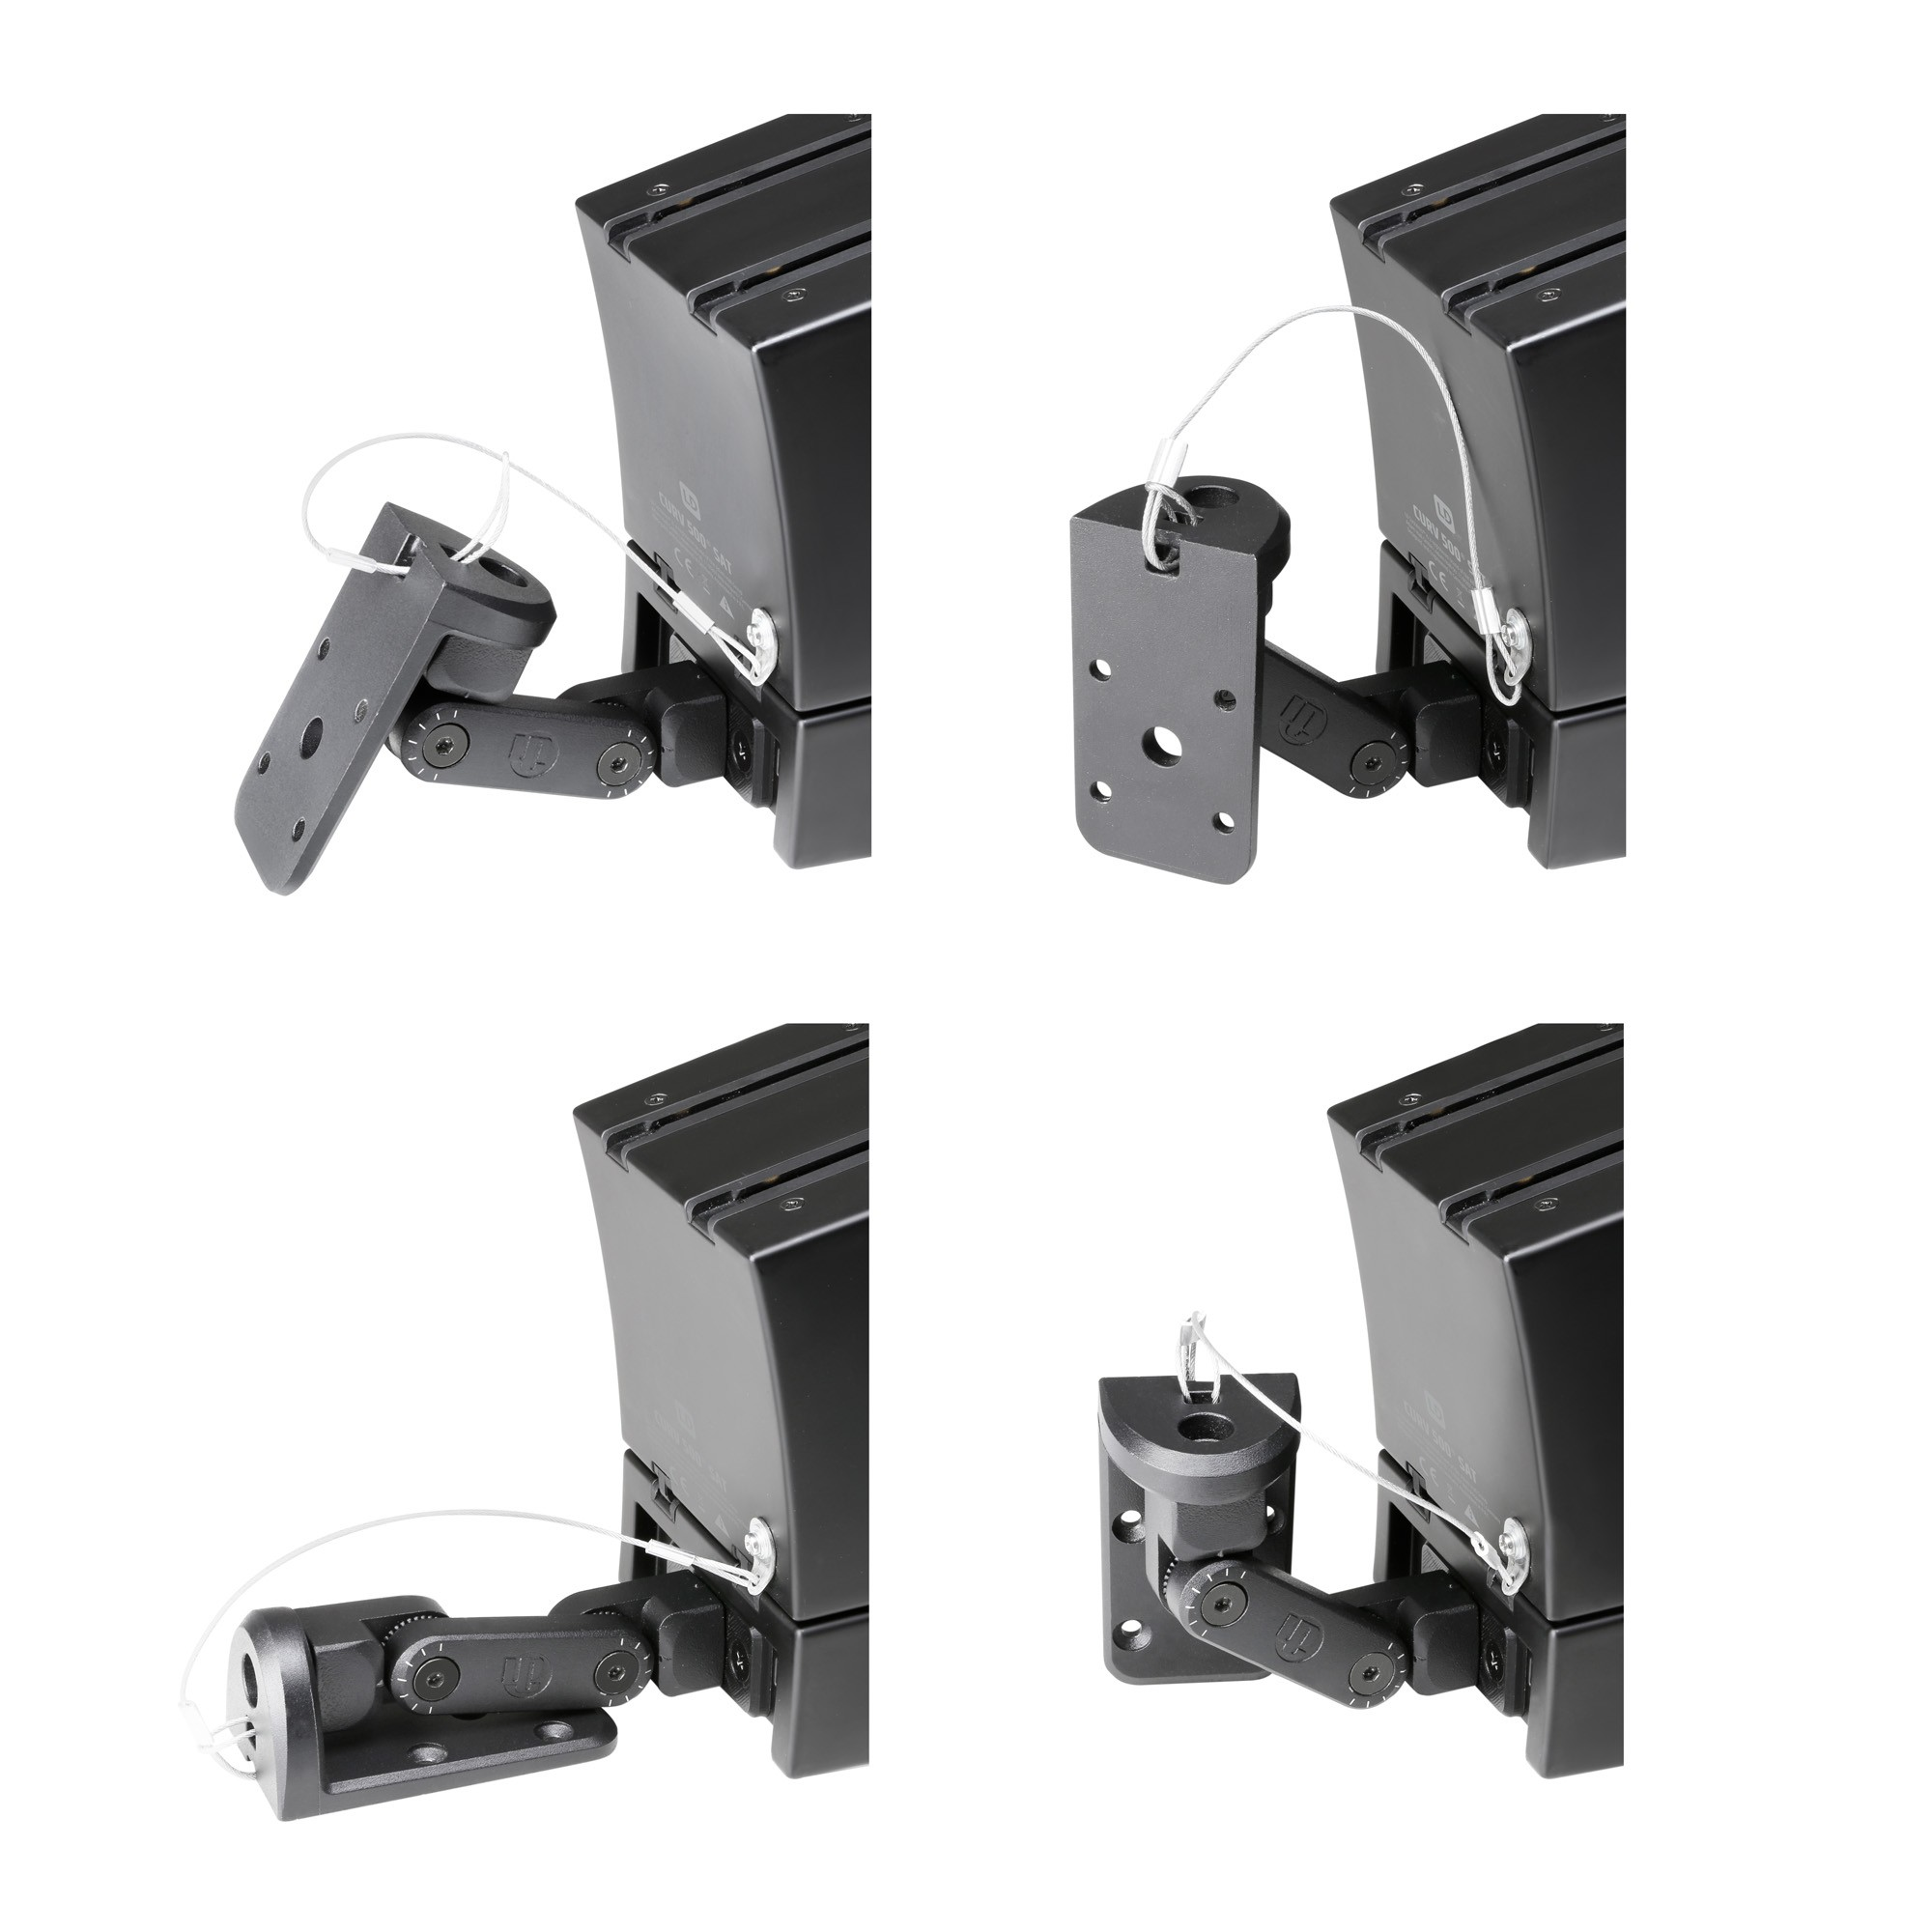 CURV 500 WMB Wall mounting bracket for CURV 500® satellites black